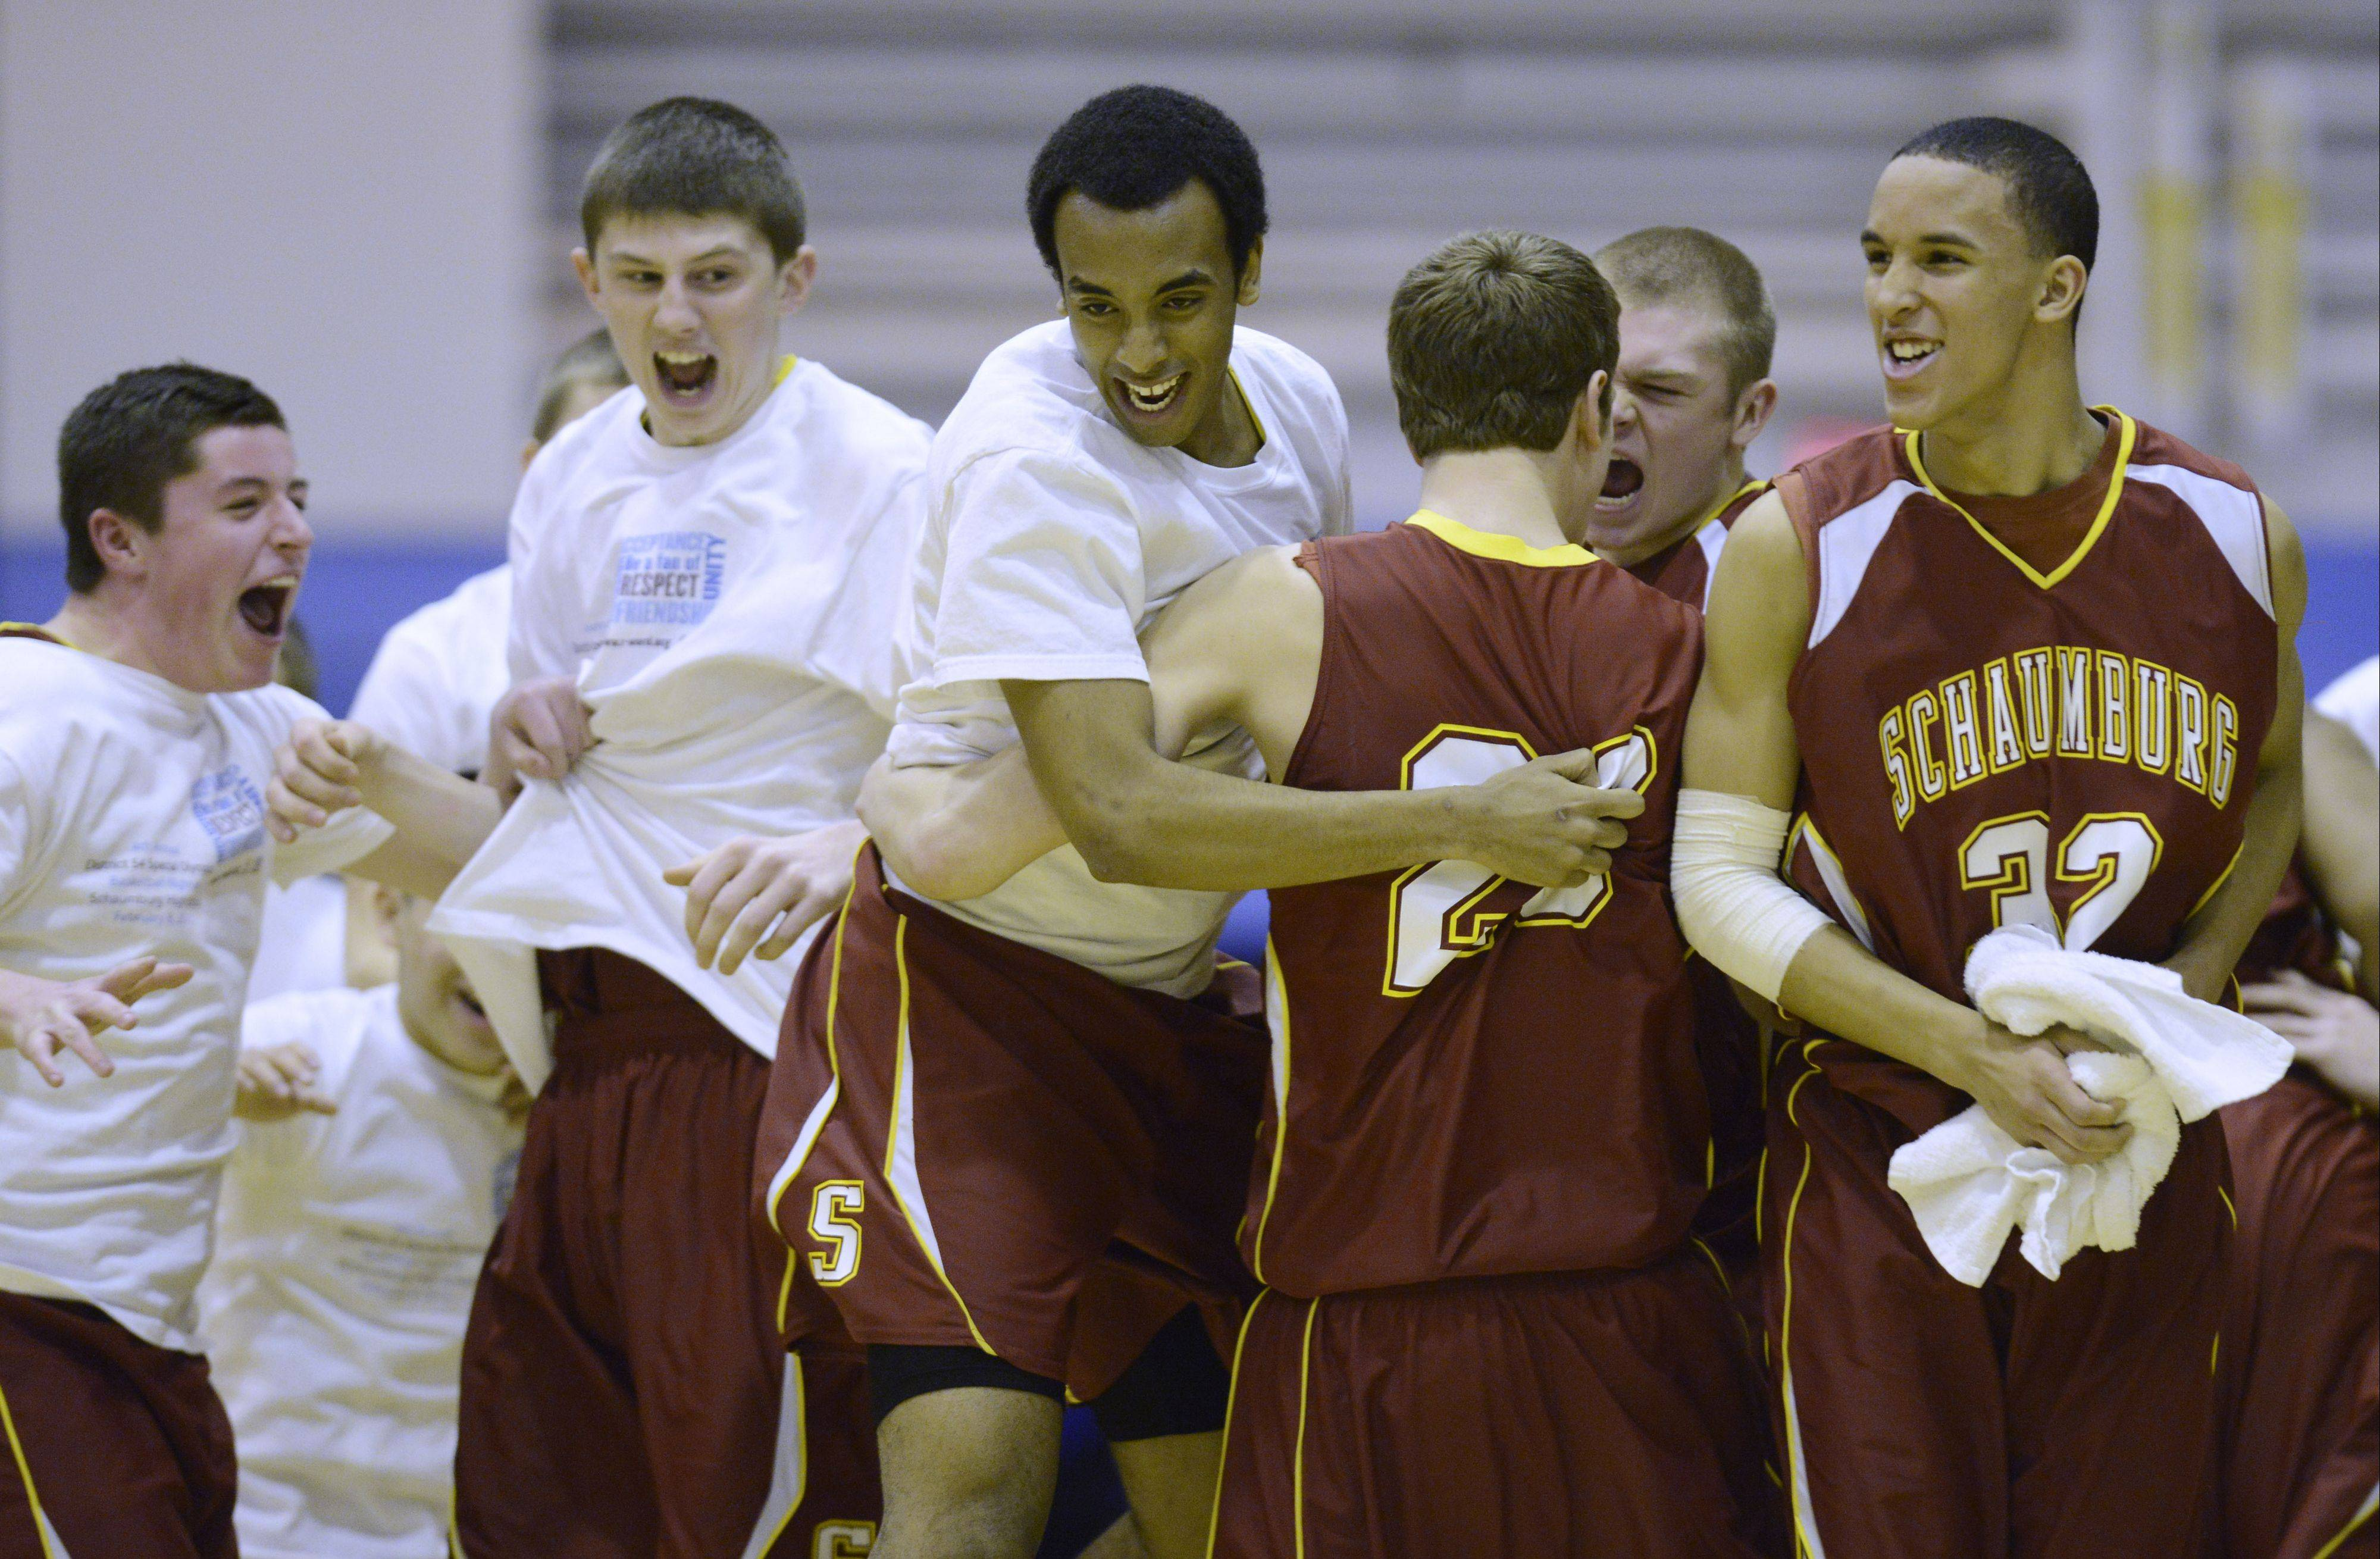 Schaumburg players celebrate their victory over Prospect in the Mid-Suburban League championship game at Prospect on Wednesday.